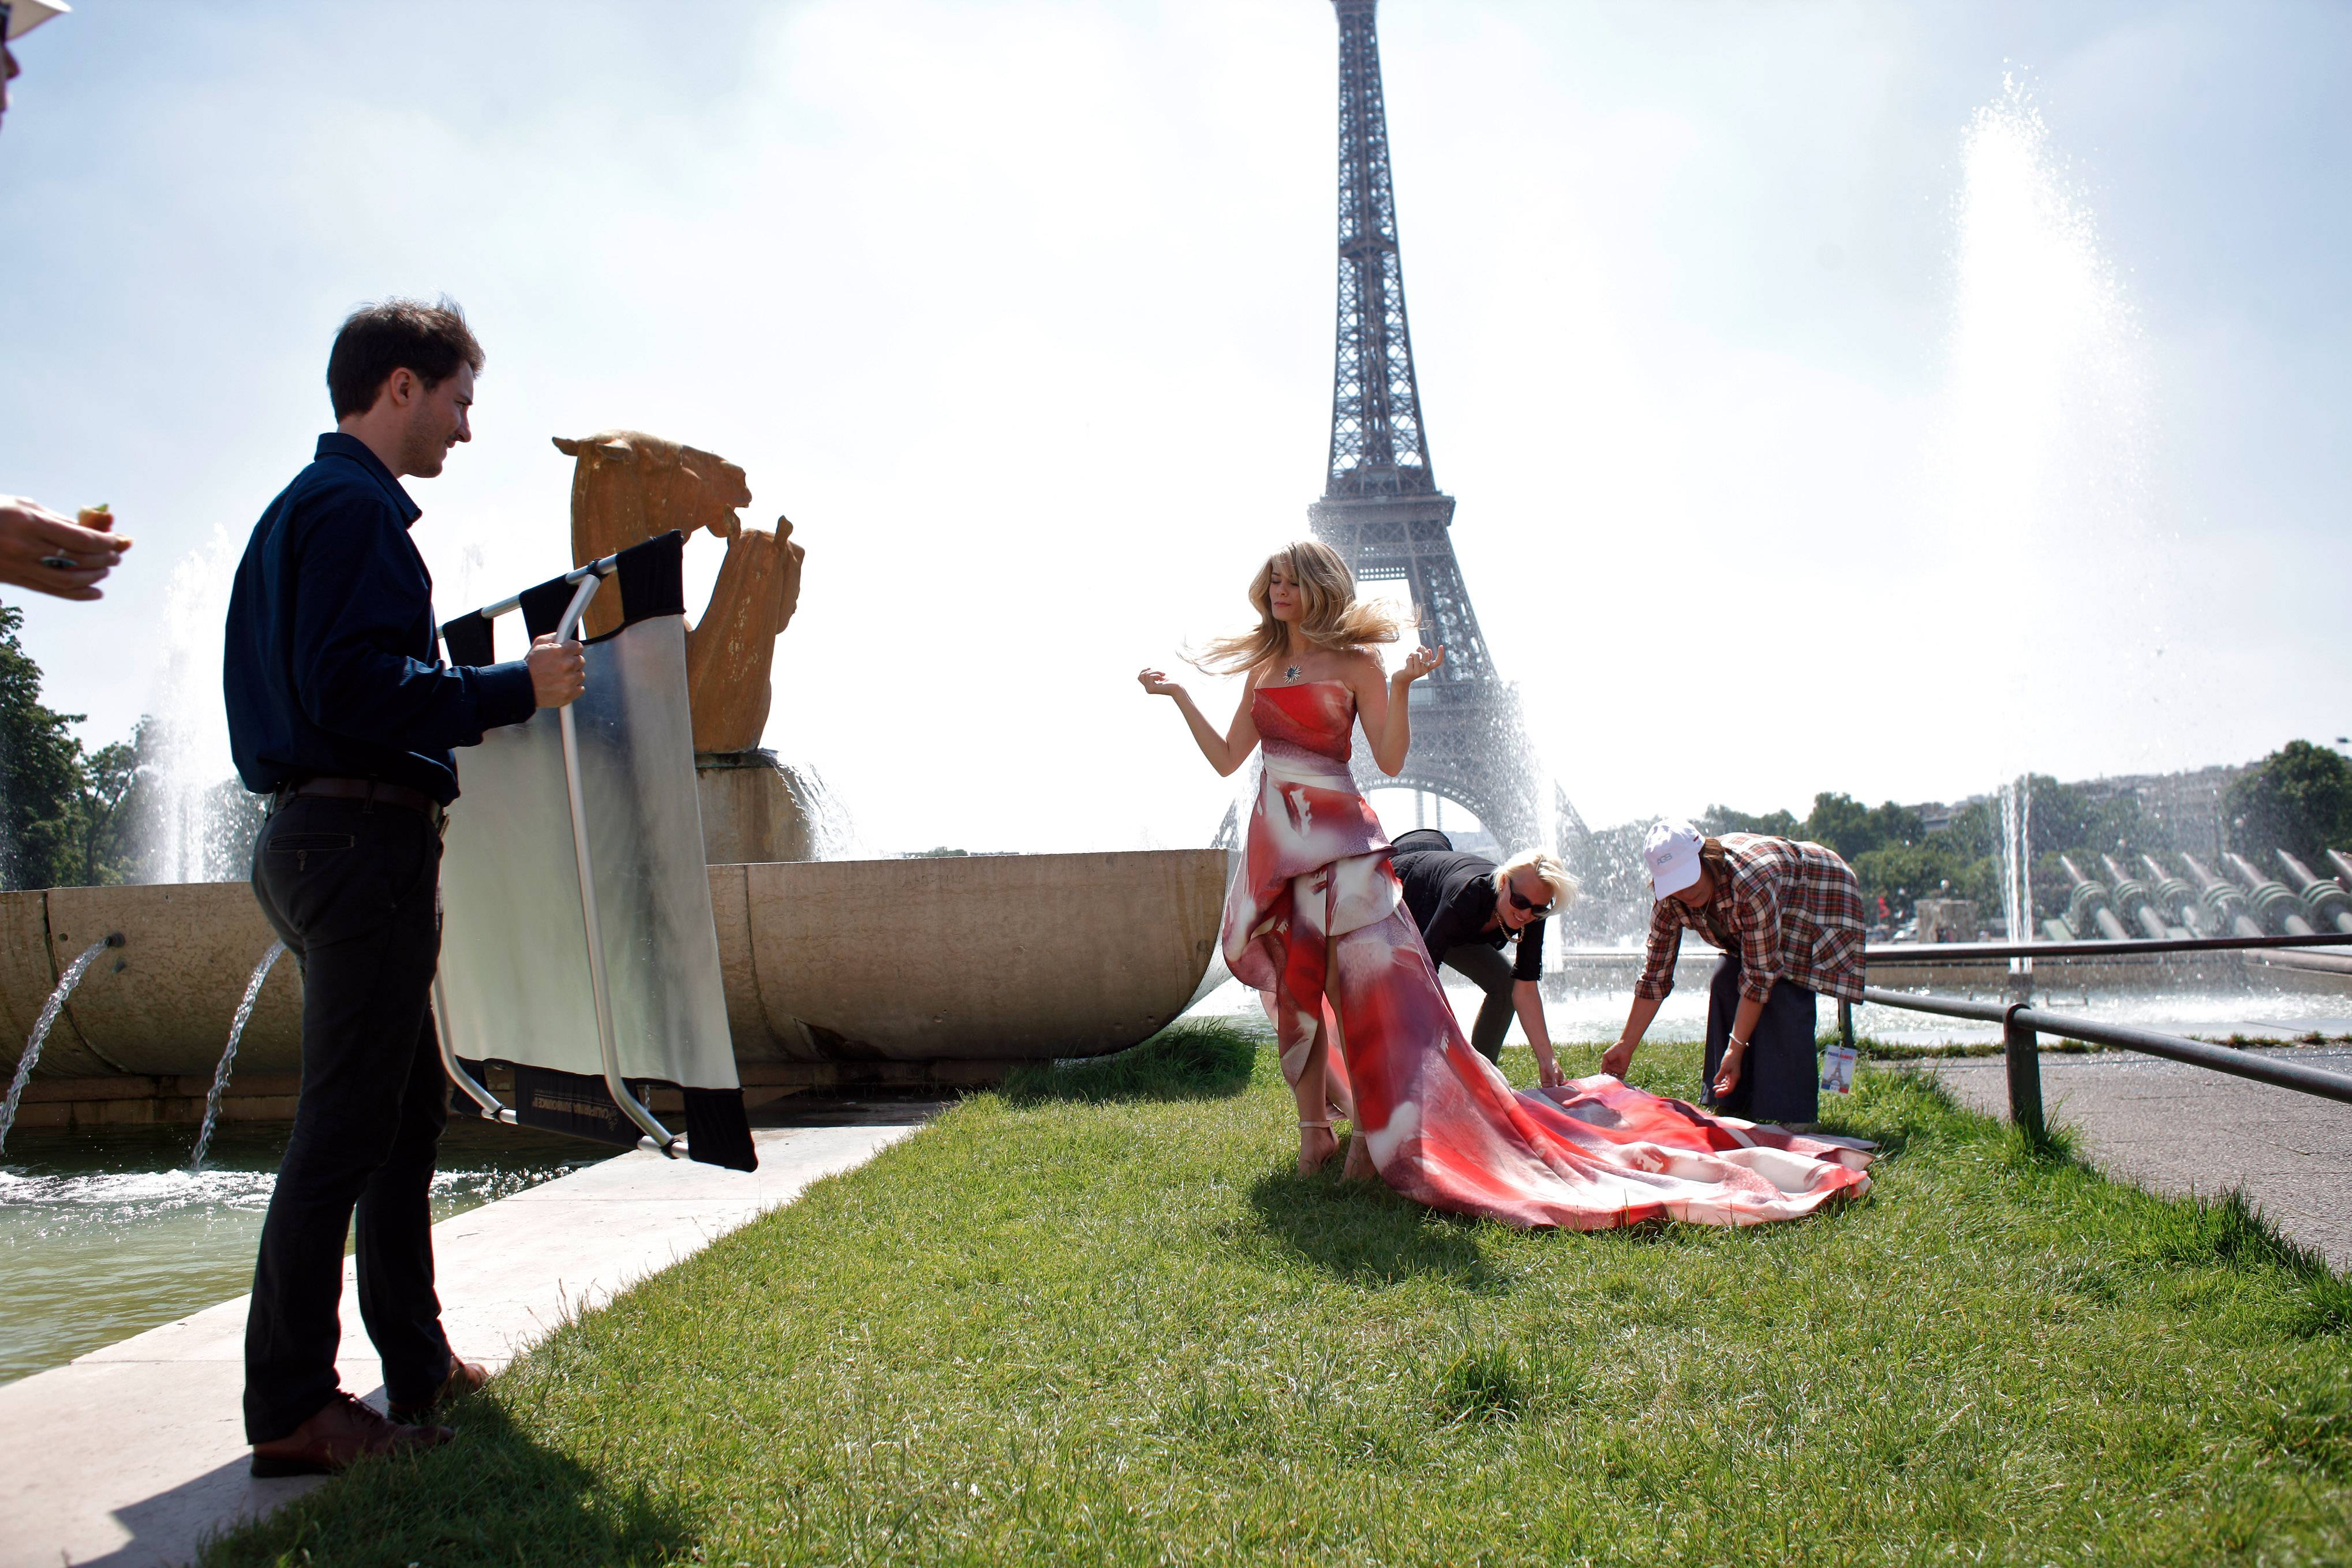 """The Bold and the Beautiful"" cast member Kimberly Matula, center, is prepared prior to filming a scene in the Trocadero gardens in Paris Friday. The U.S. series filmed a series of episodes in front of the Eiffel Tower to celebrate 25 years of being broadcast in France."